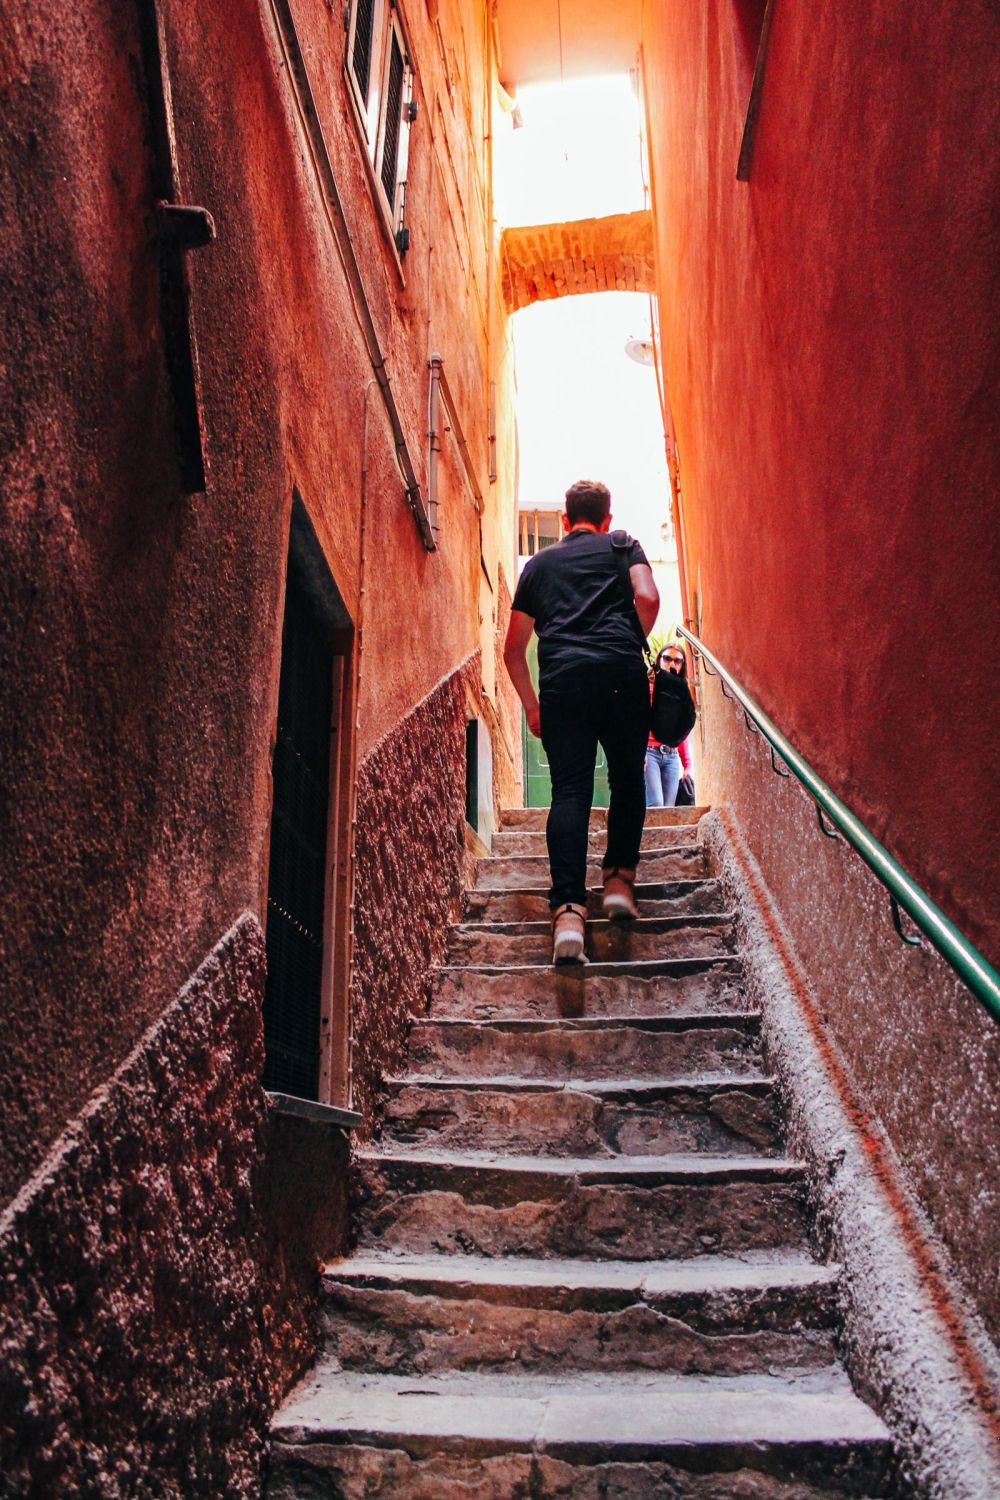 Vernazza in Cinque Terre, Italy - The Photo Diary! [4 of 5] (12)